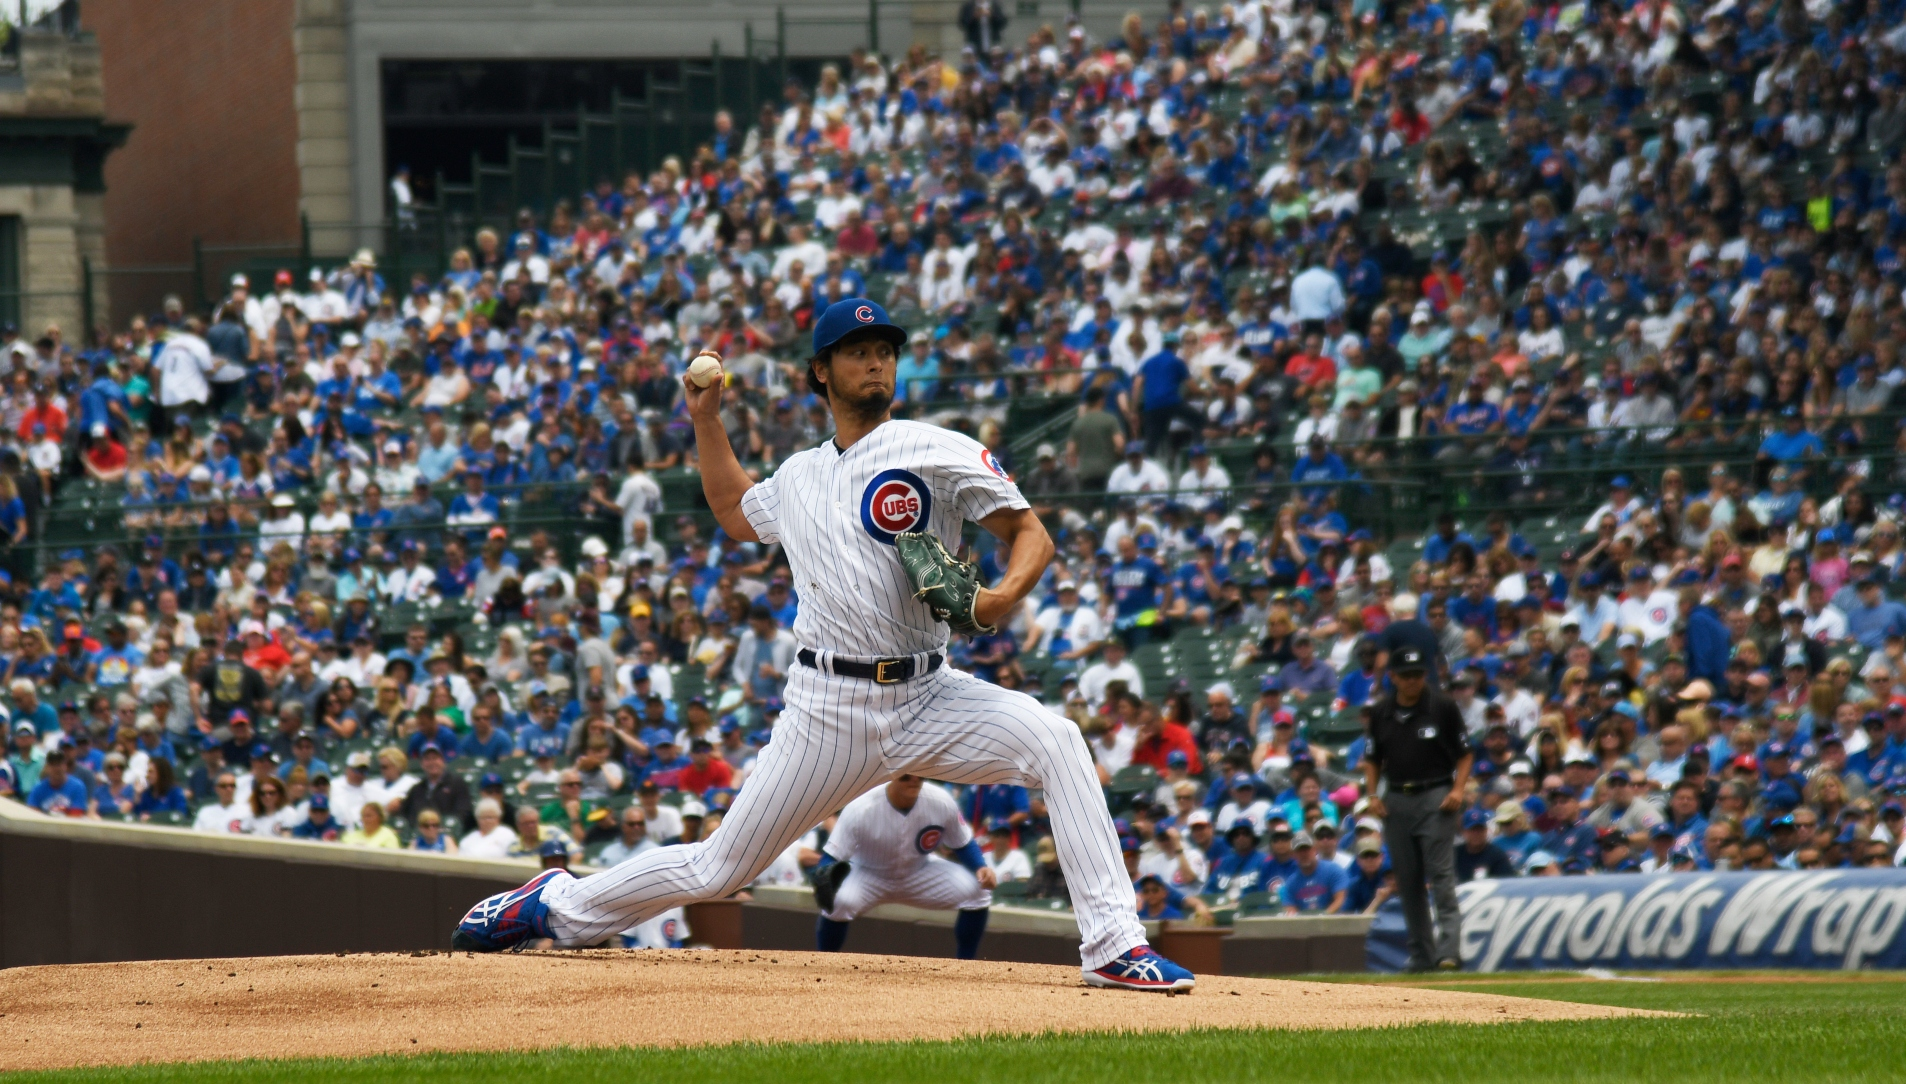 Darvish Takes Another No-Decision In Cubs' Loss